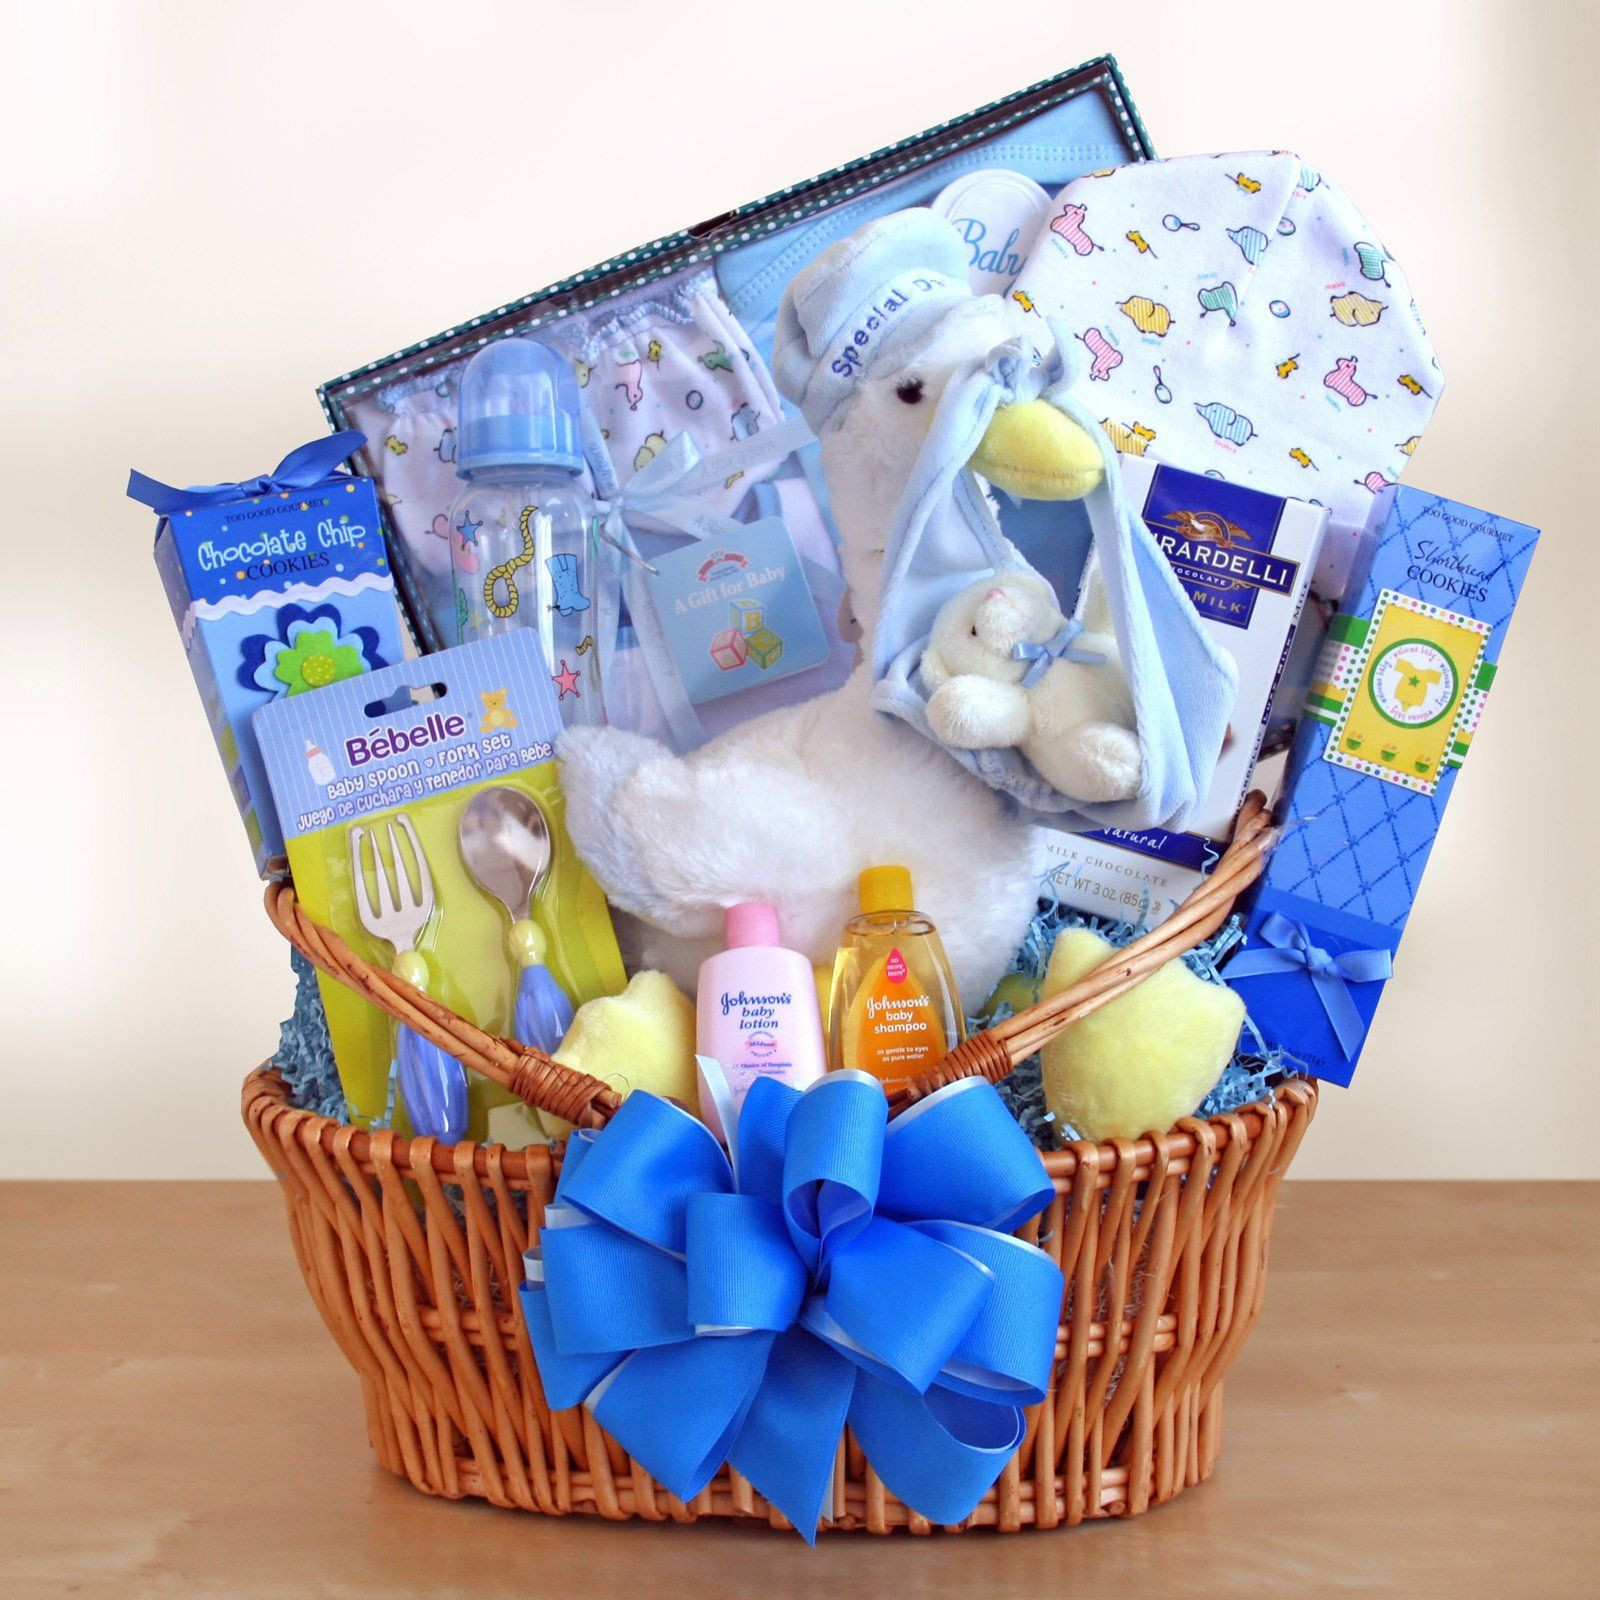 Best ideas about Gift Basket Ideas For Boys . Save or Pin Special Stork Delivery Baby Boy Gift Basket Now.